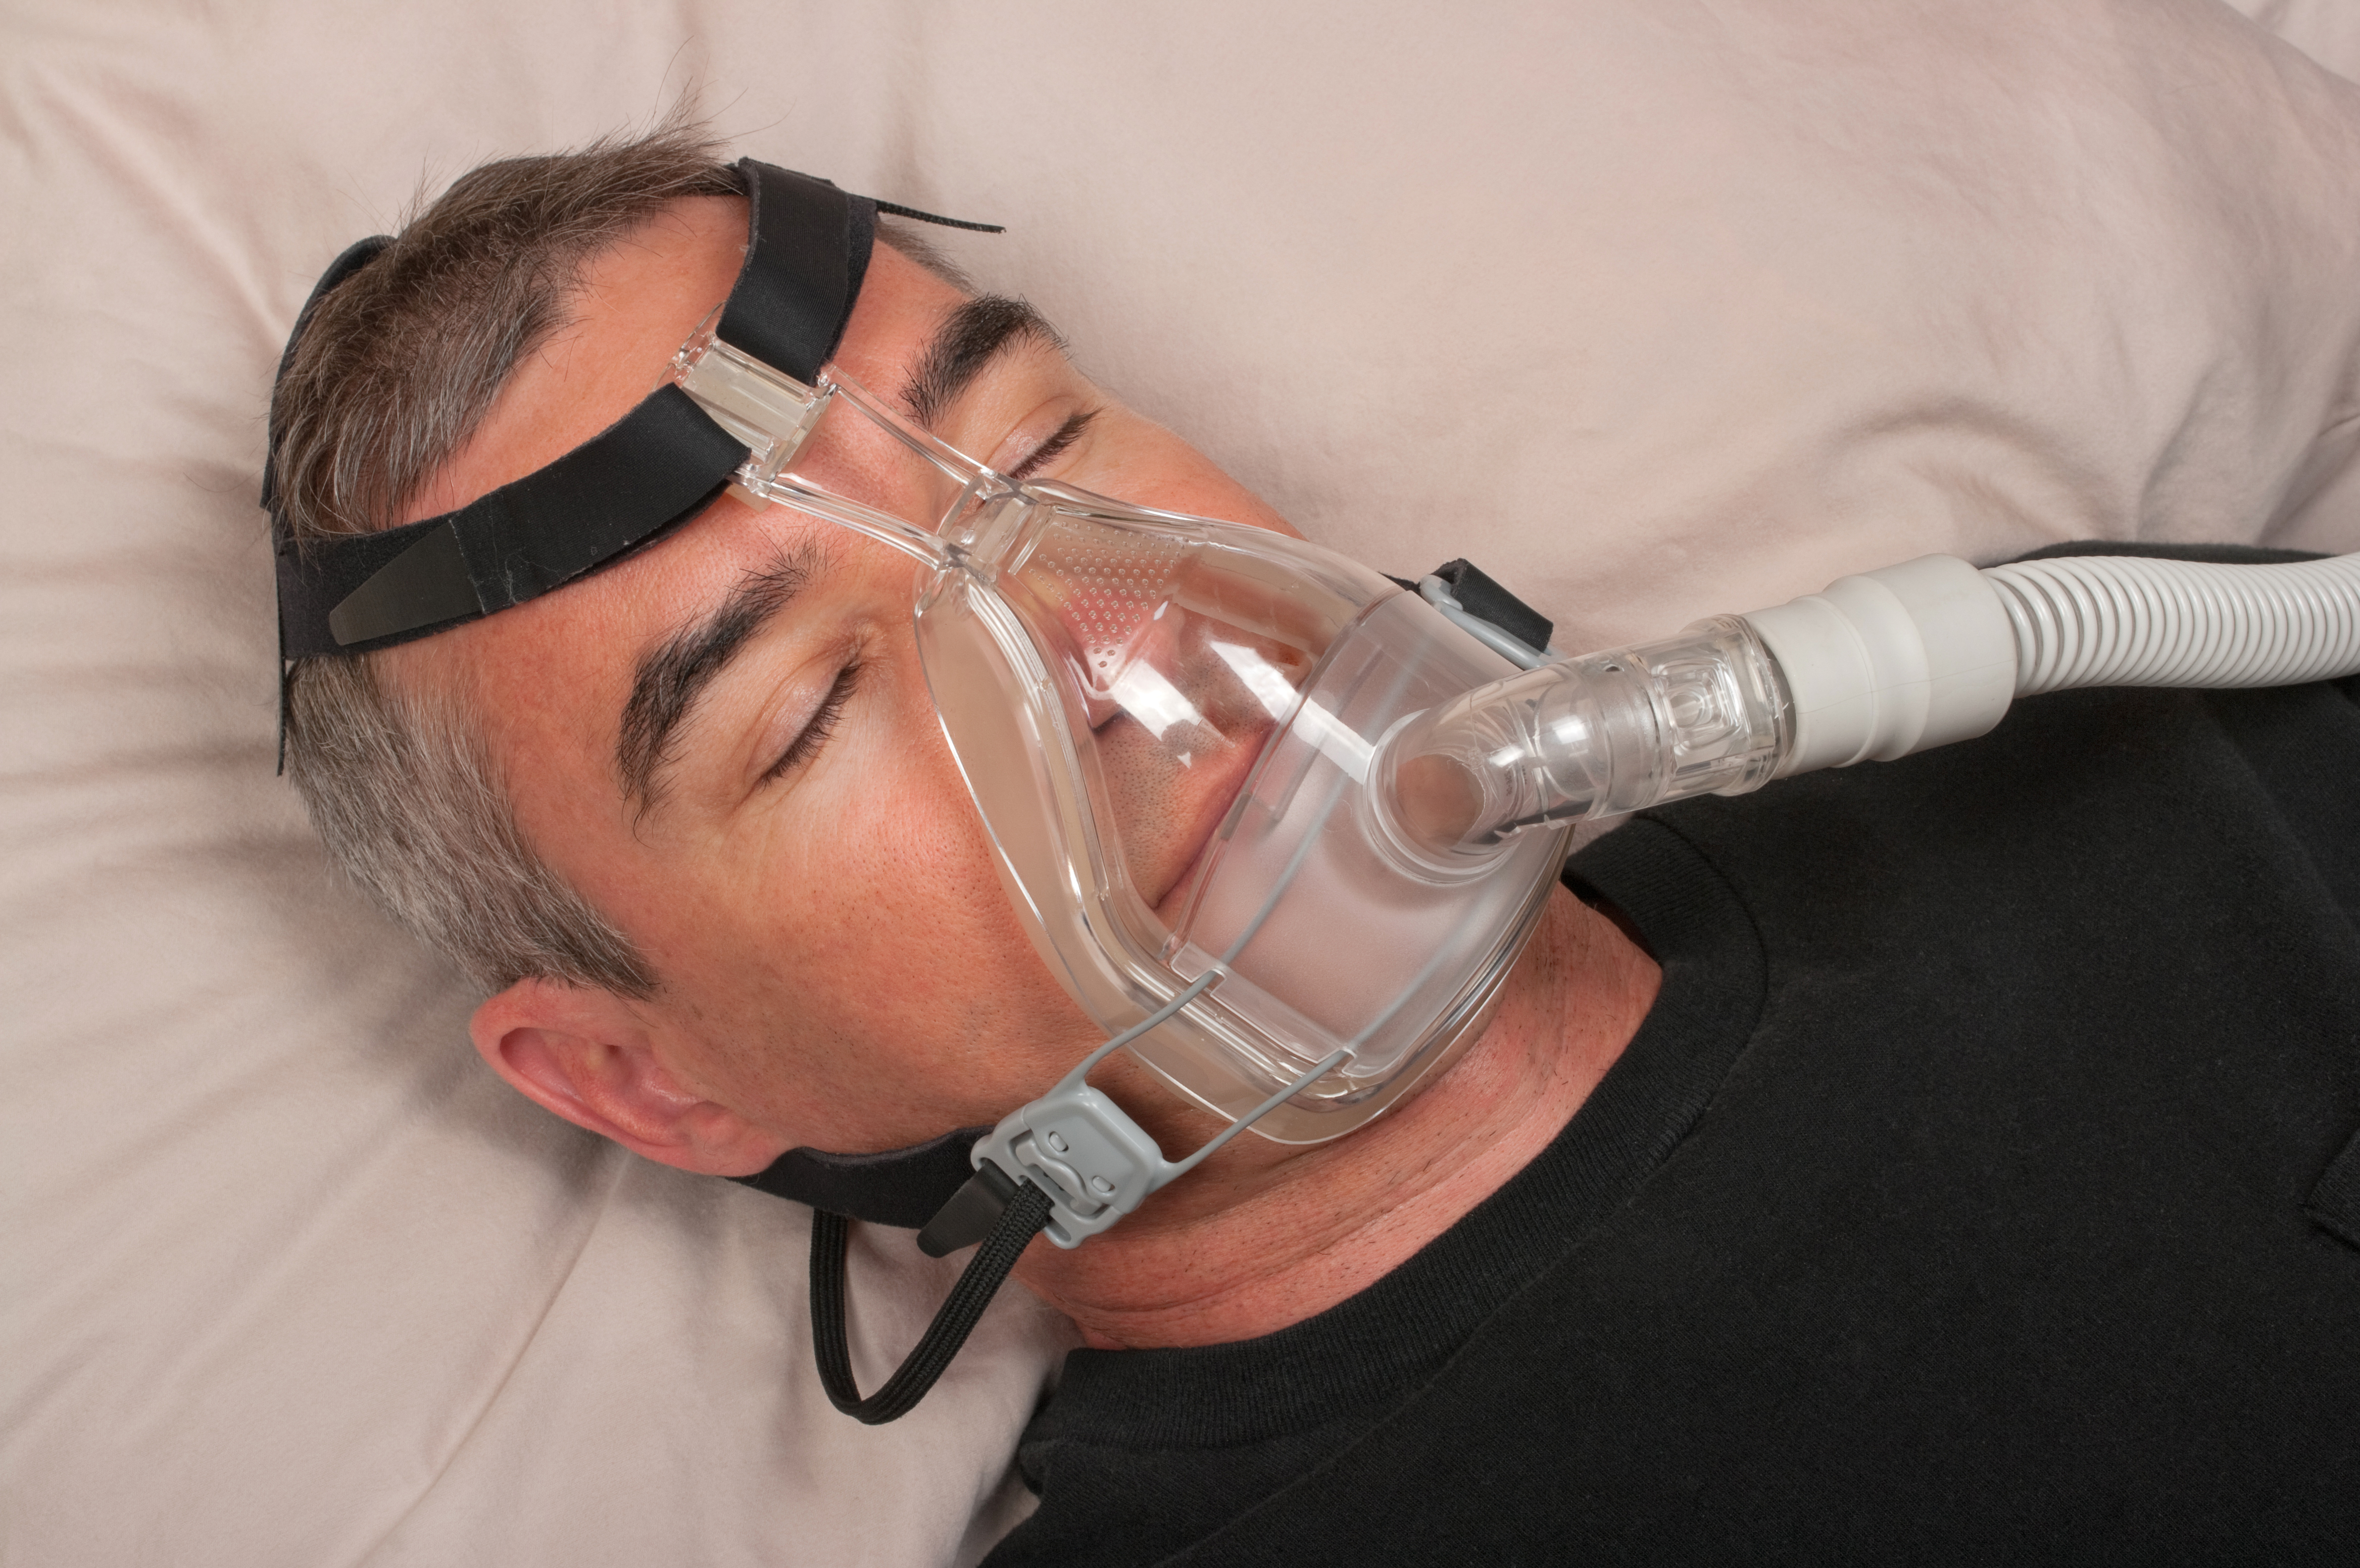 Researchers Report Fibromyalgia as a Common Disorder in Obstructive Sleep Apnea Patients